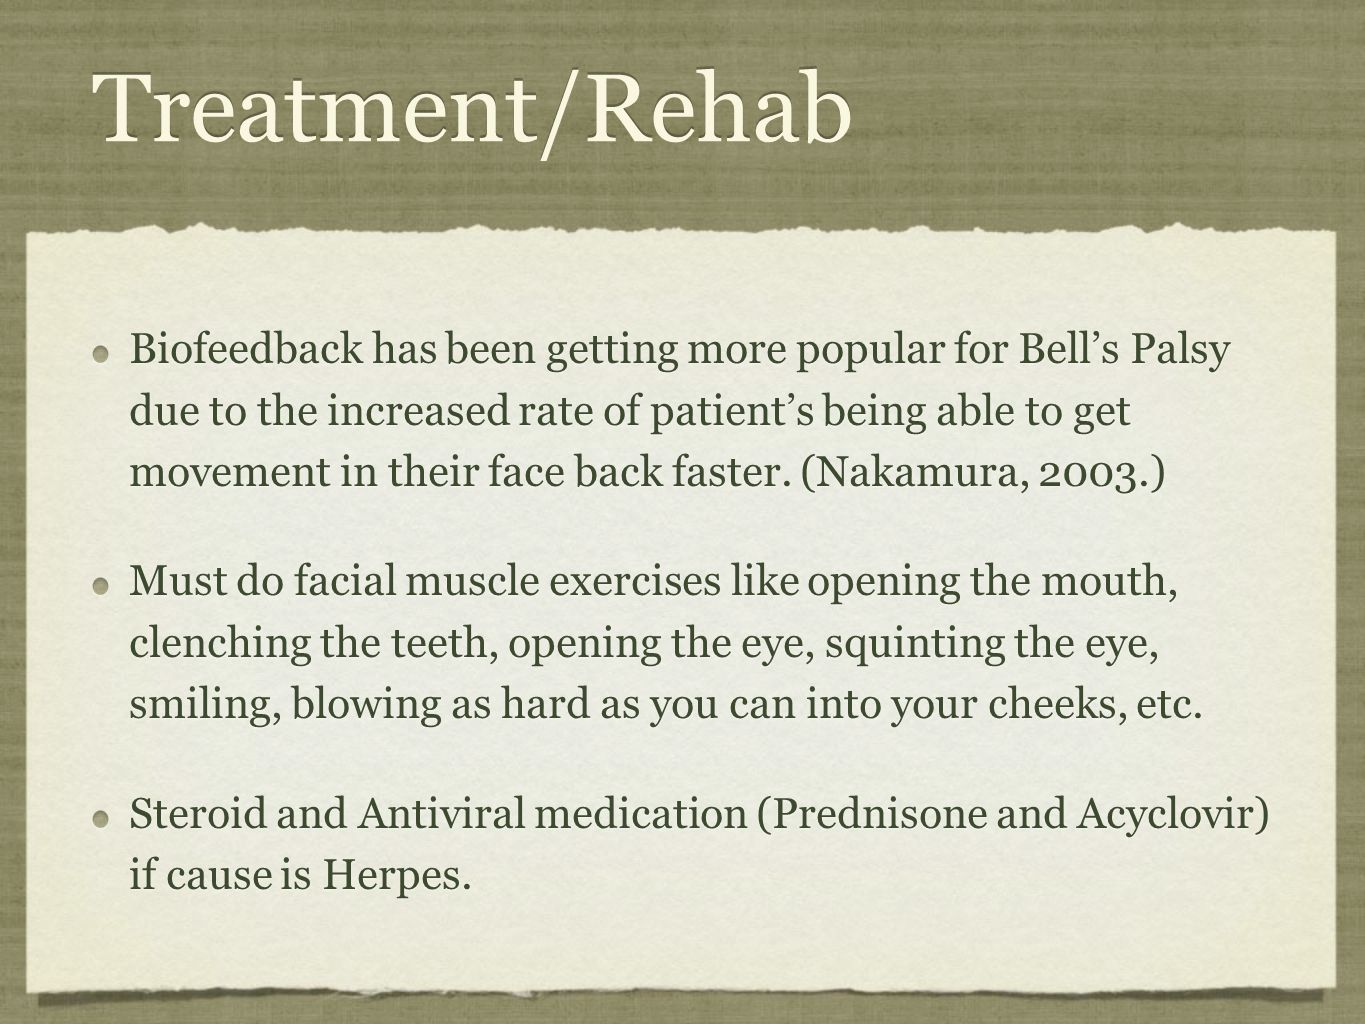 Treatment/Rehab Biofeedback has been getting more popular for Bell's Palsy due to the increased rate of patient's being able to get movement in their